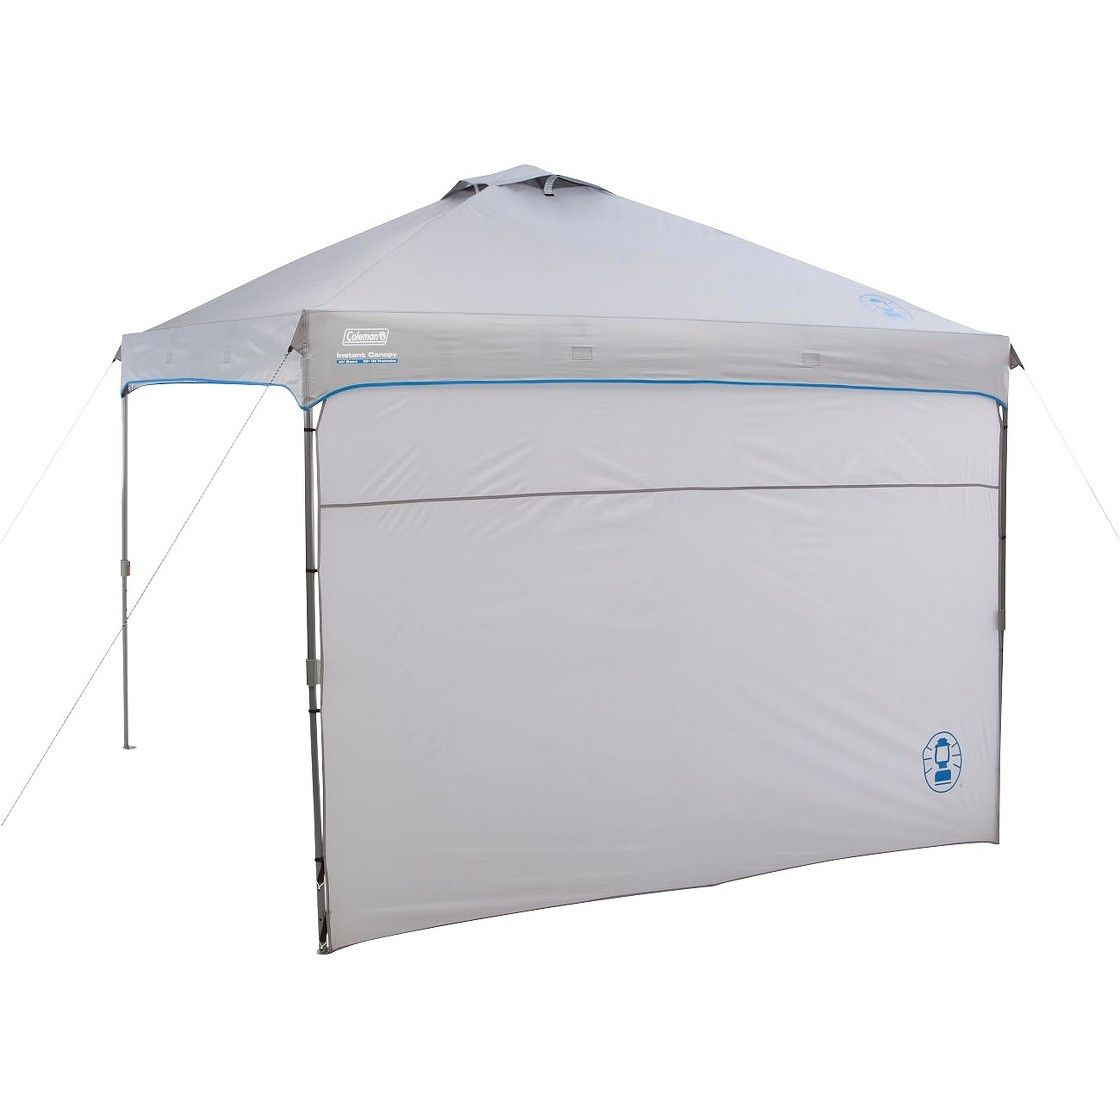 Coleman® Instant Canopy with Sunwall 10u0027x10u0027 - Gray  sc 1 st  Pinterest & Coleman® Instant Canopy with Sunwall 10u0027x10u0027 - Gray | Instant ...